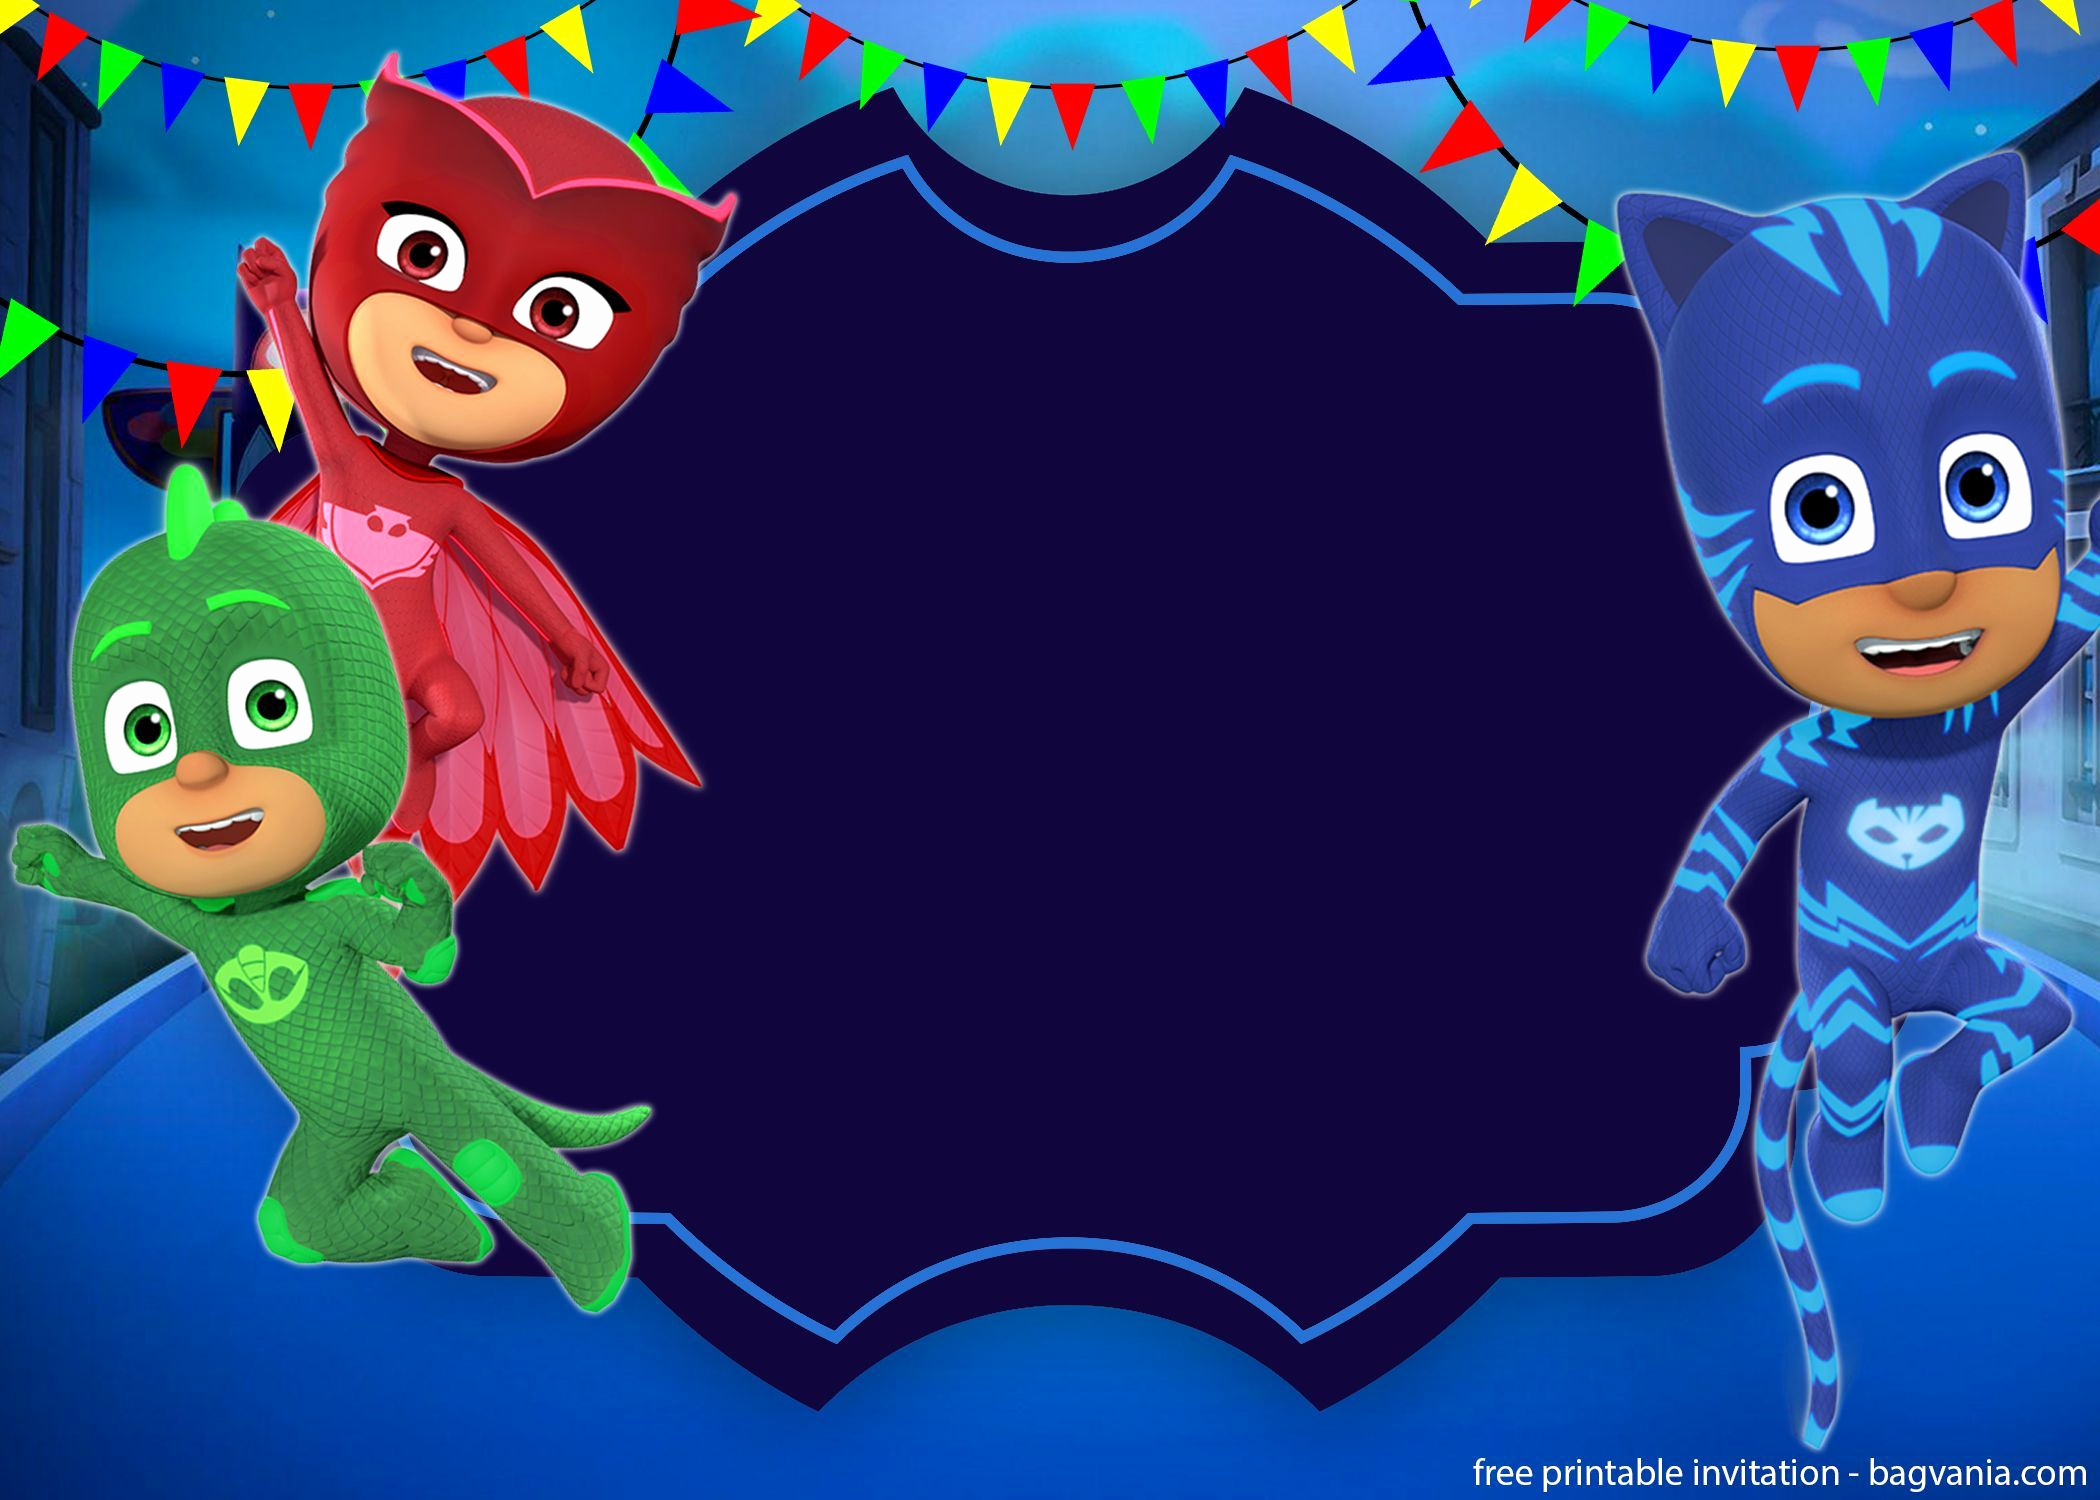 Pj Mask Invitation Template Unique Free Printable Pj Masks Invitation Template